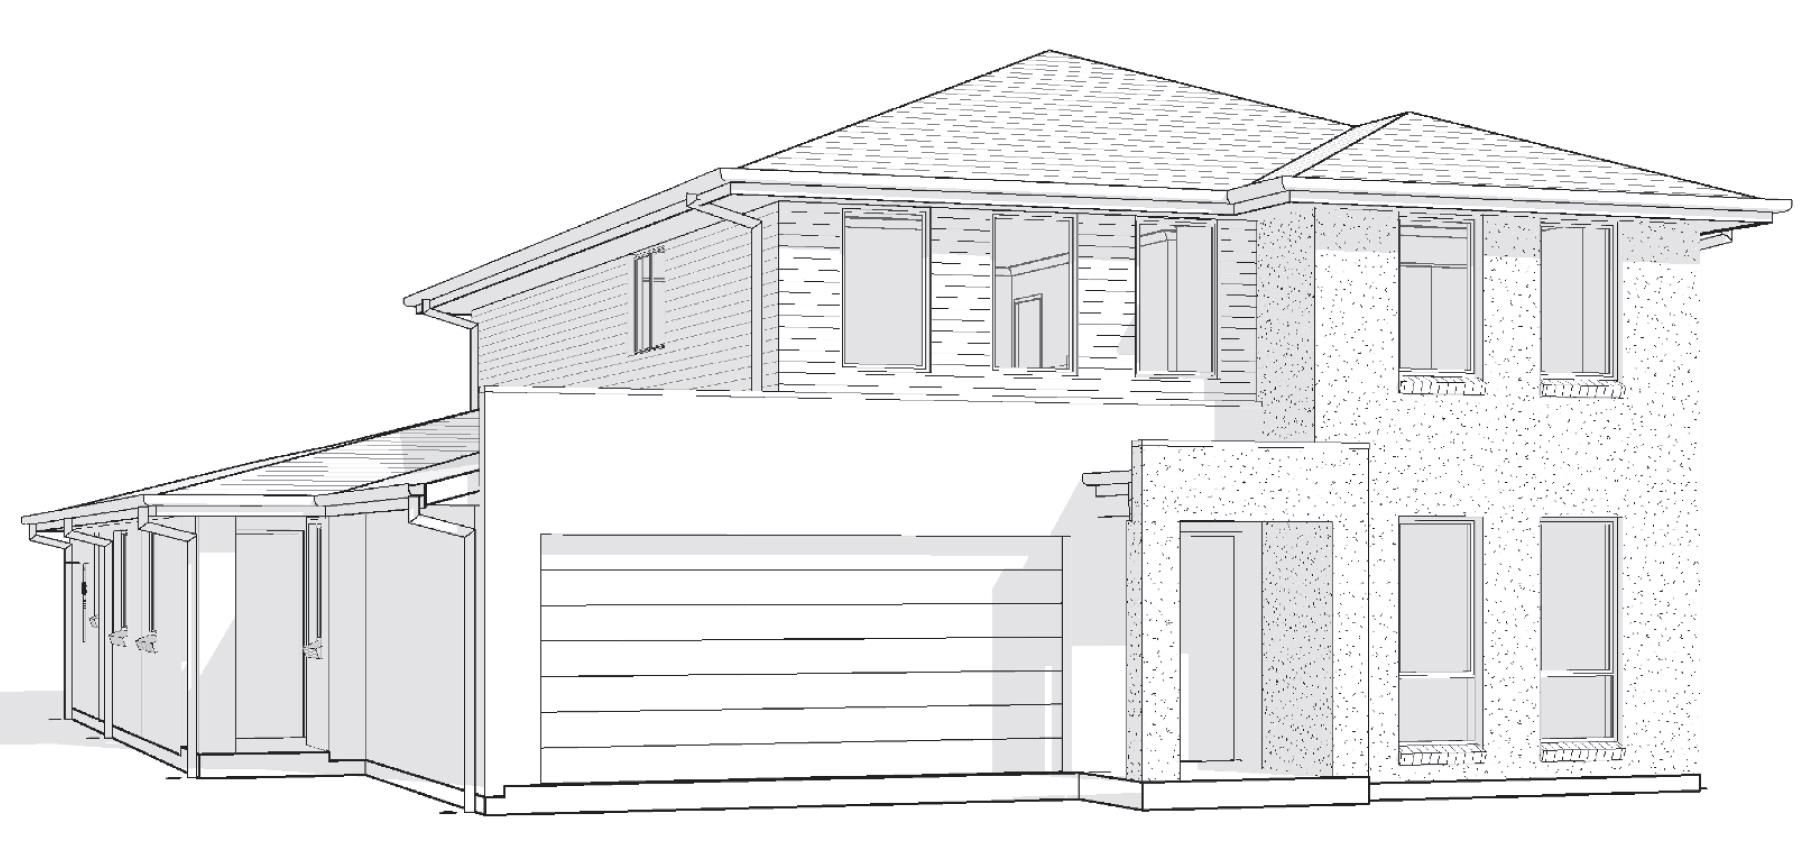 Lot 2232 Proposed Road (Oran Park), Oran Park NSW 2570, Image 2